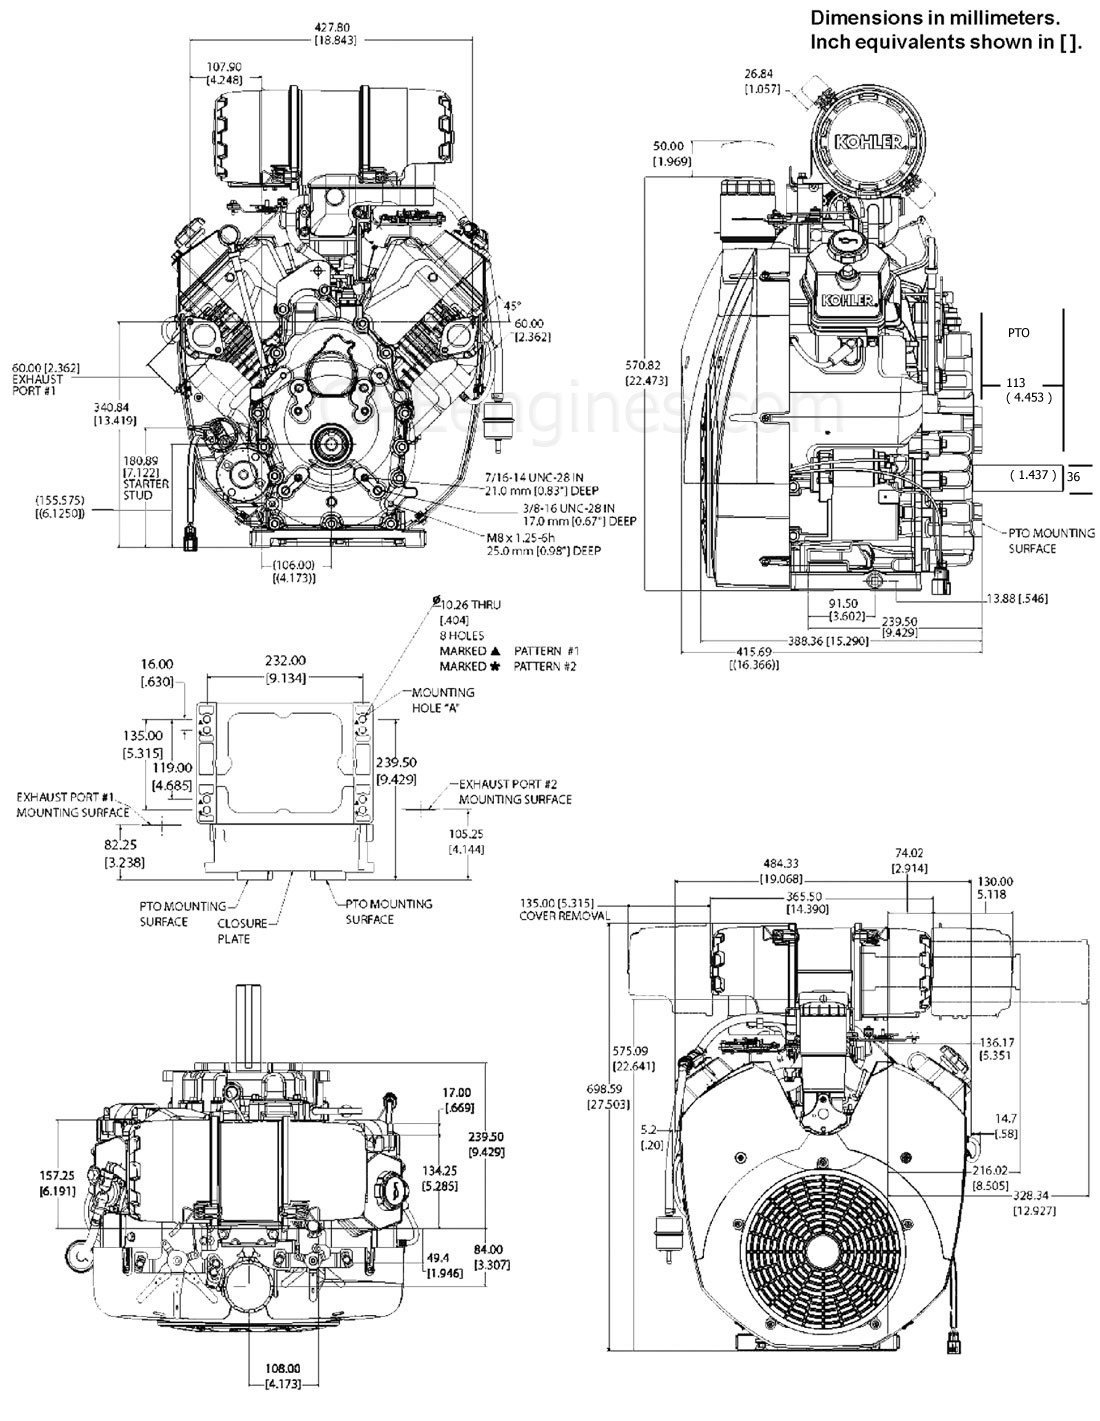 CH980_drawings ch940 ch960 ch980 ch1000 drawings kohler engines and parts store kohler ch23s wiring diagram at readyjetset.co